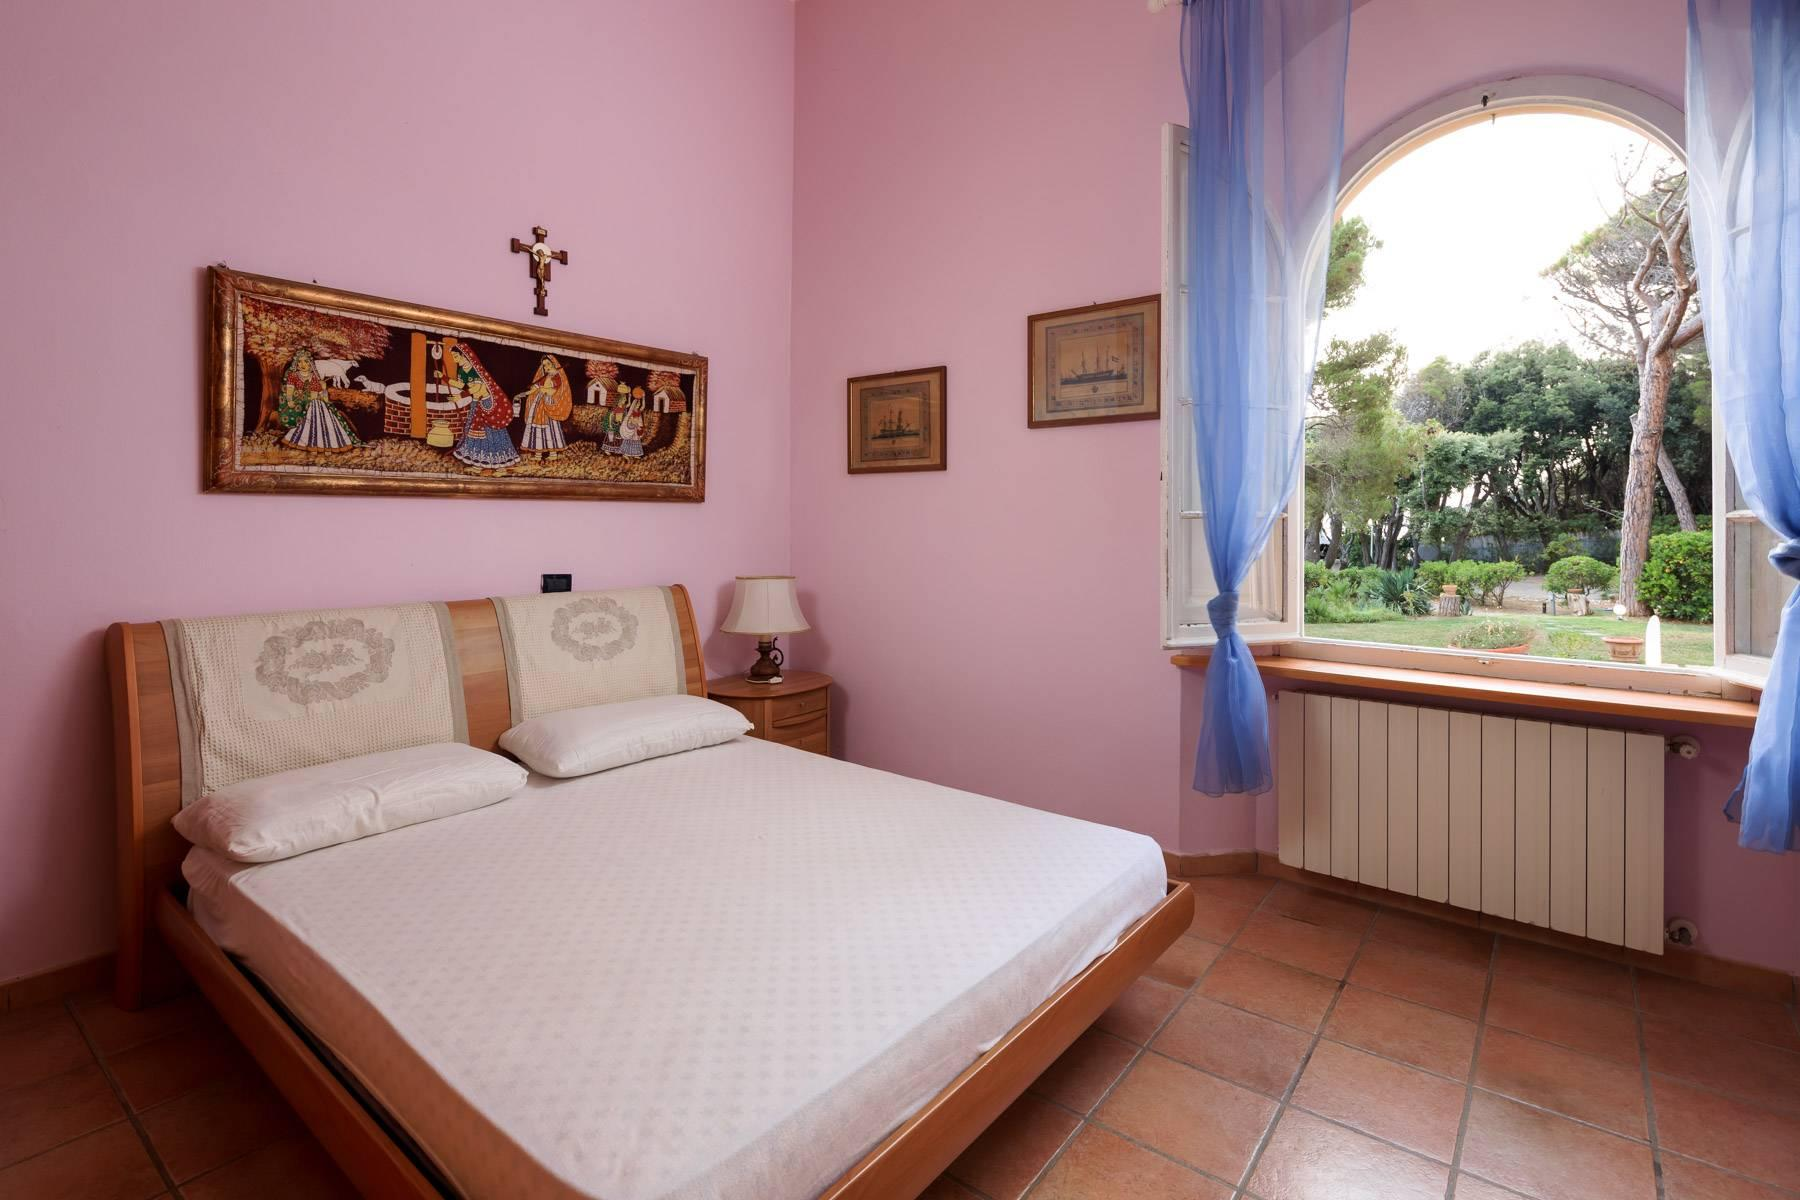 Apartment with private garden and access to the sea in a historic villa - 10